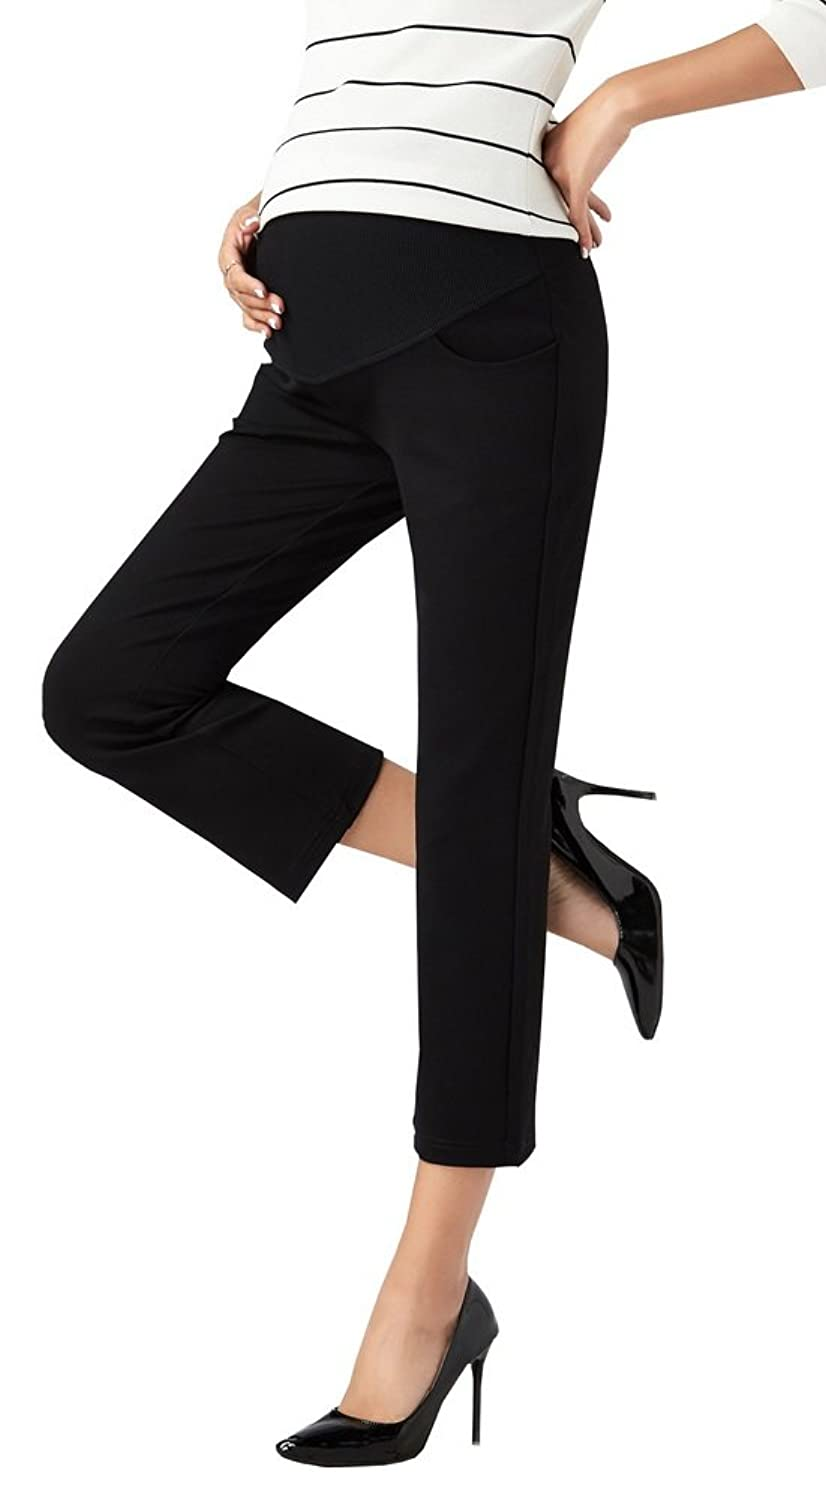 7657be2cb16 Top 10 wholesale Fun Dress Pants - Chinabrands.com